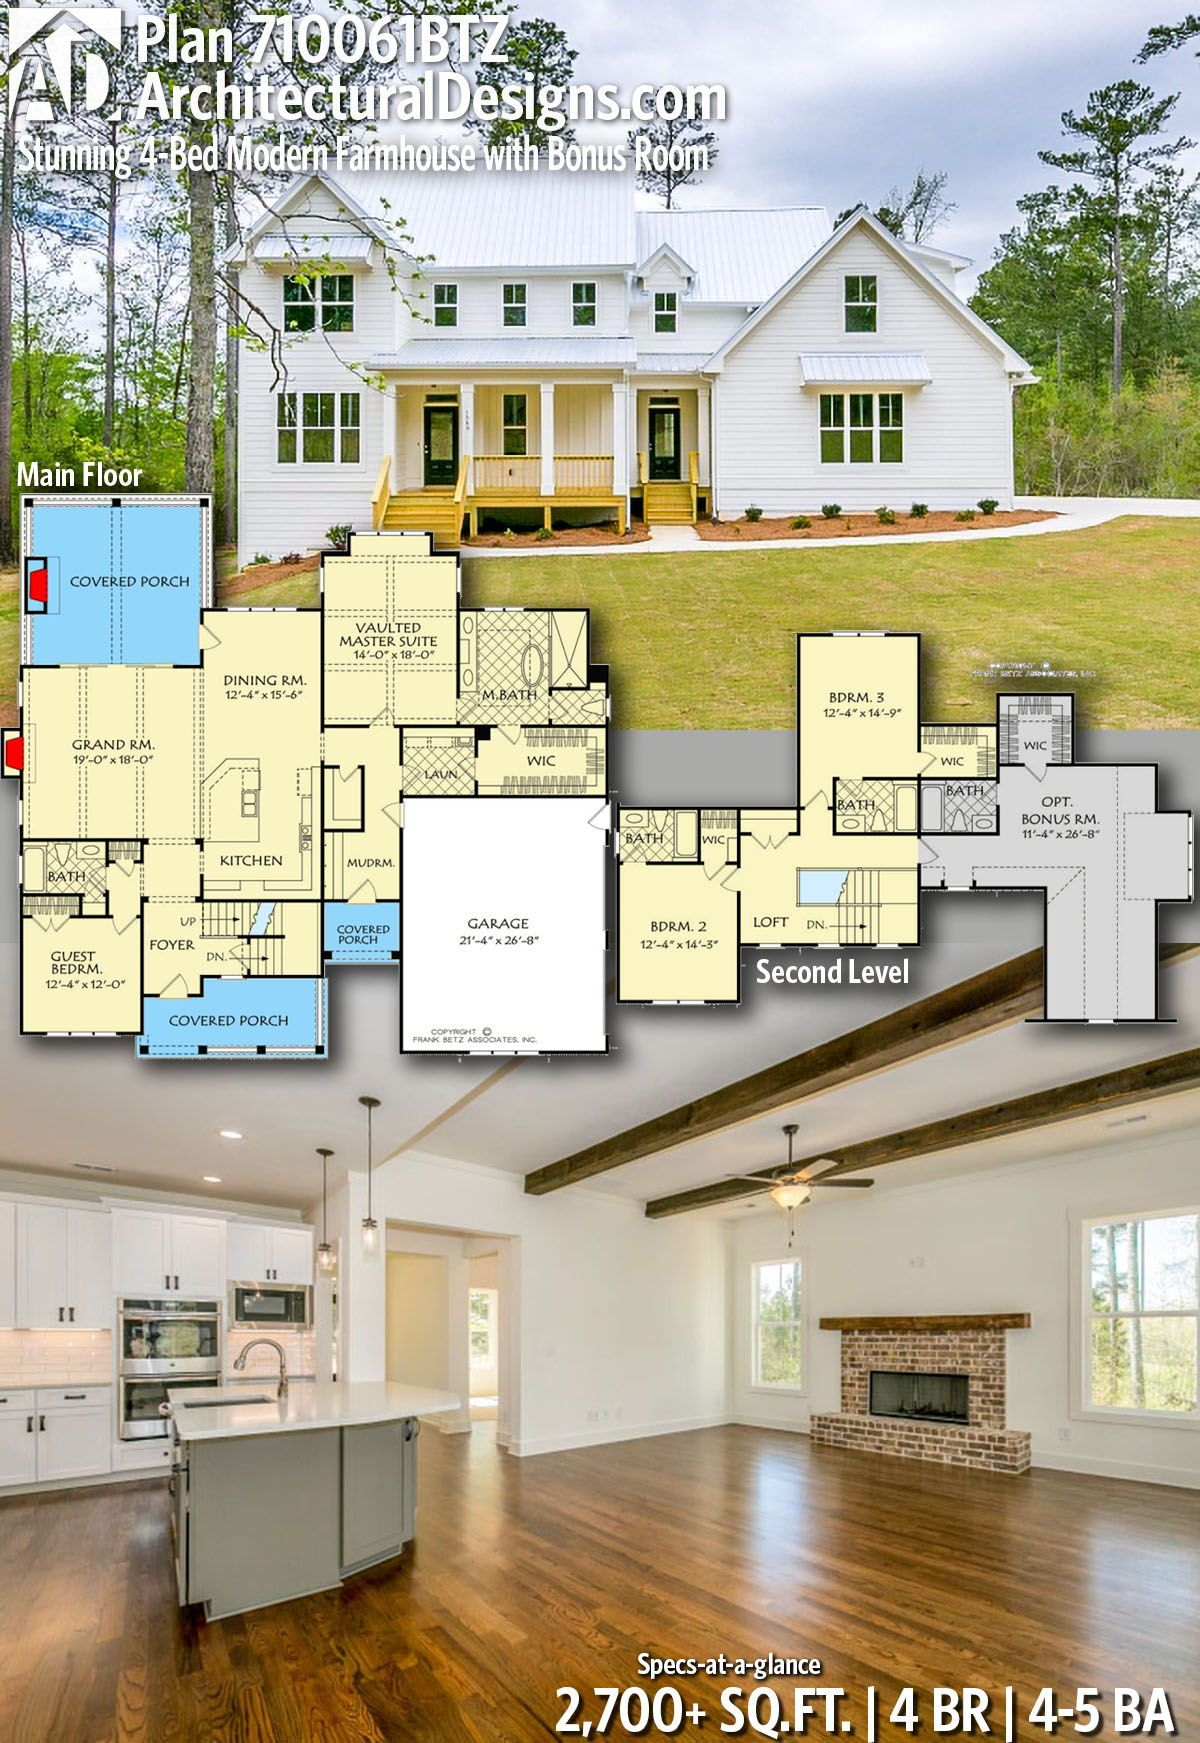 Ready when you are where do want to build btz adhouseplans modern farmhouse architecturaldesigns houseplans architecture also architectural designs house plans archdesigns on pinterest rh